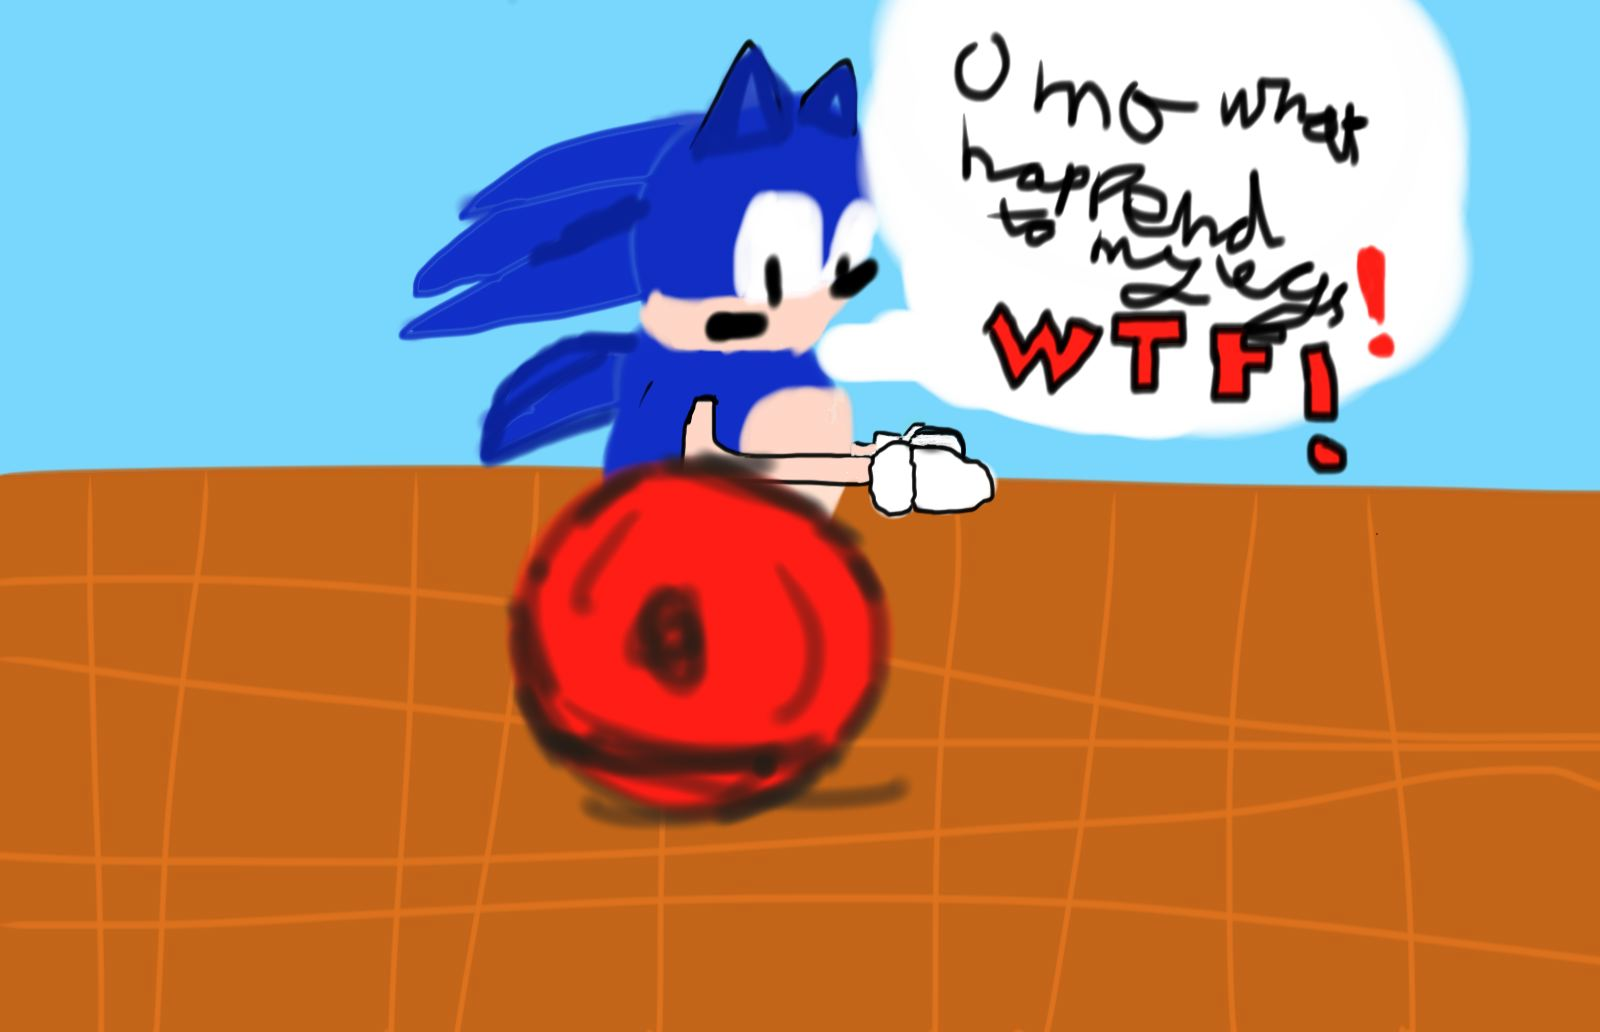 sonic where have my legs gone